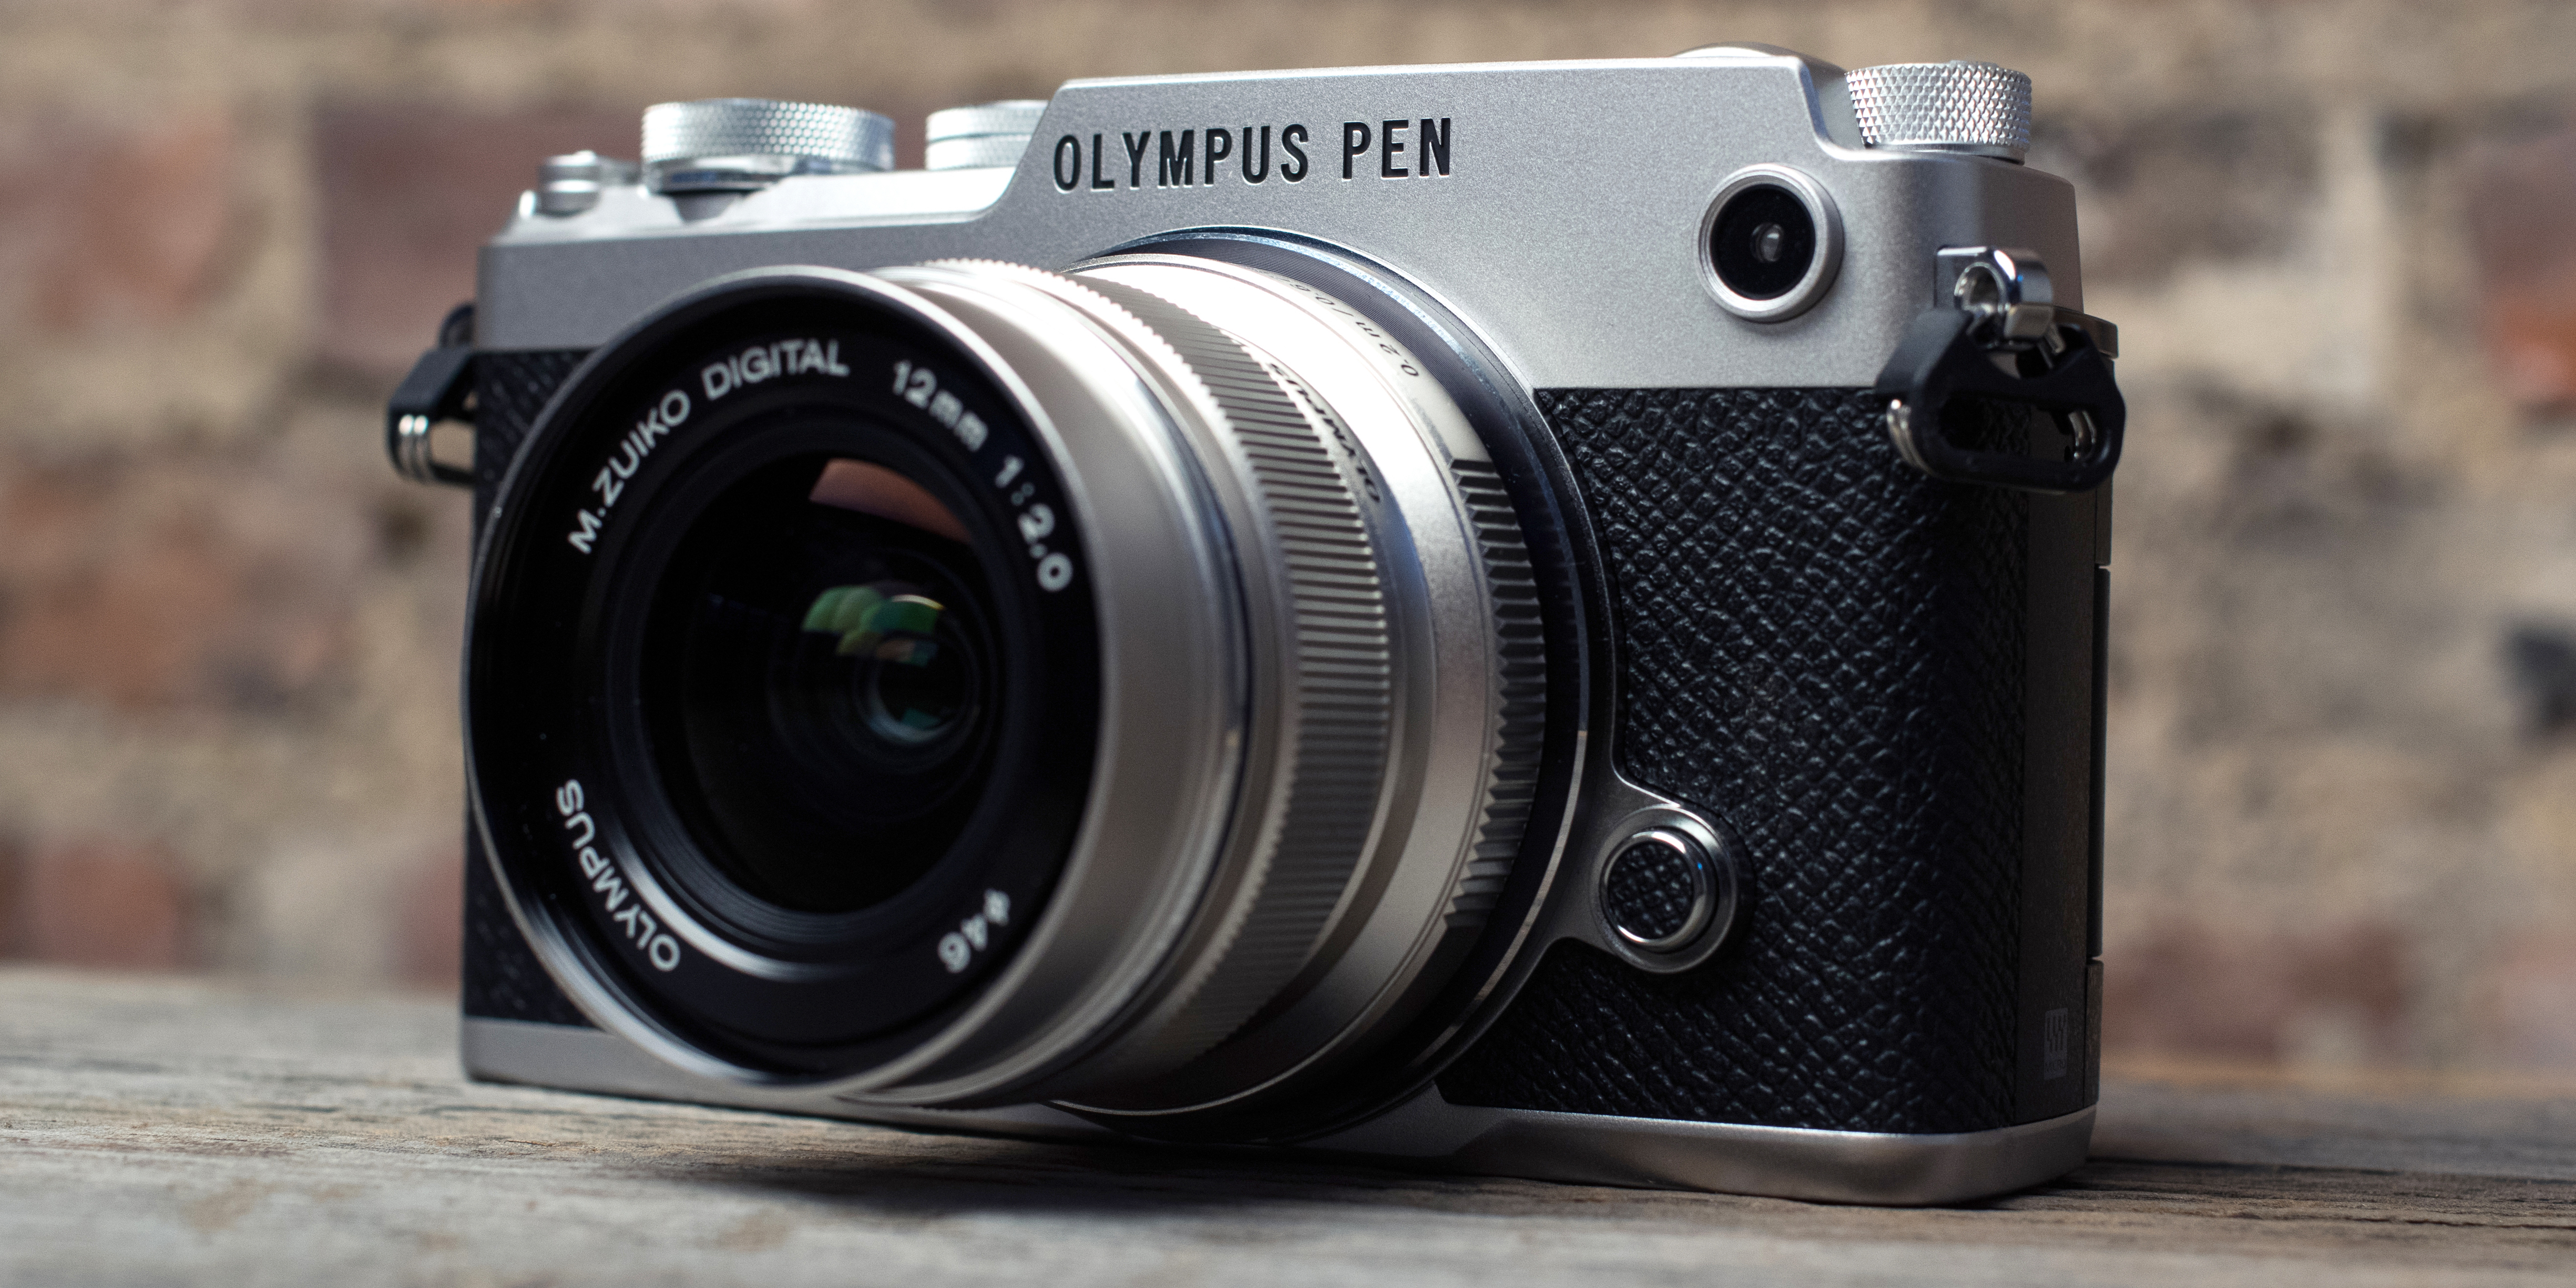 olympus pen f digital camera review cameras. Black Bedroom Furniture Sets. Home Design Ideas